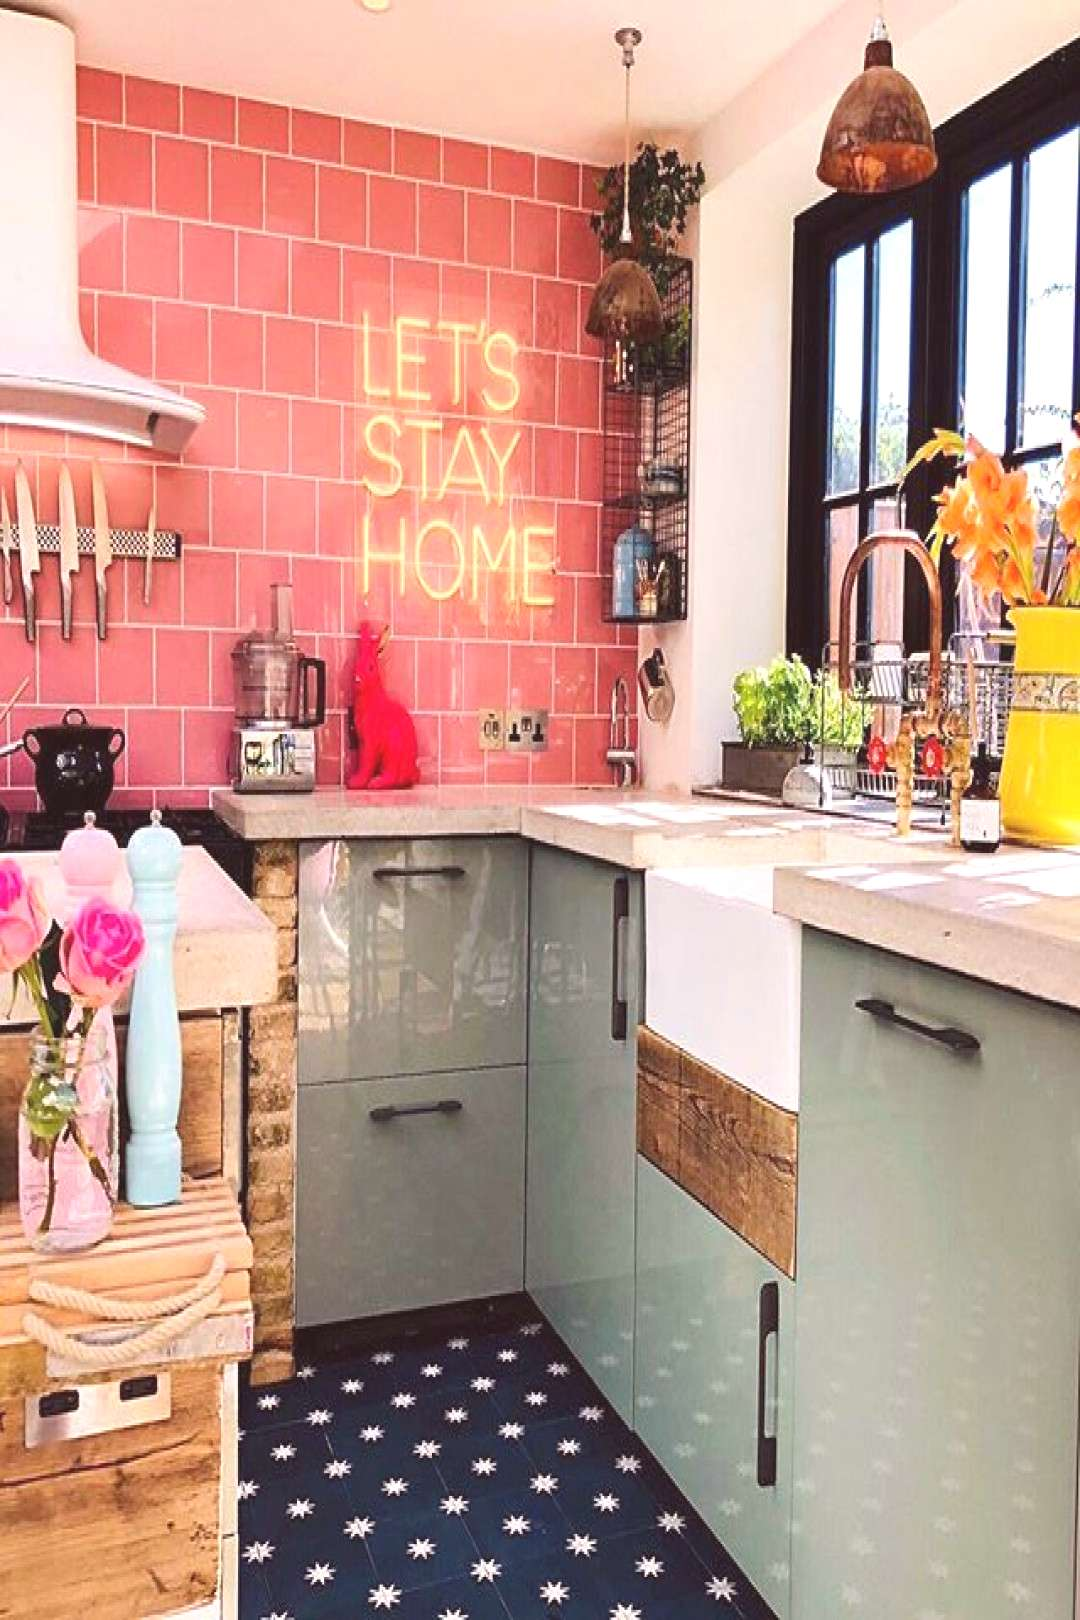 Boho Home Decor Let's Stay Home - love this kitchen by (@kasie_barton) Boho Home Decor